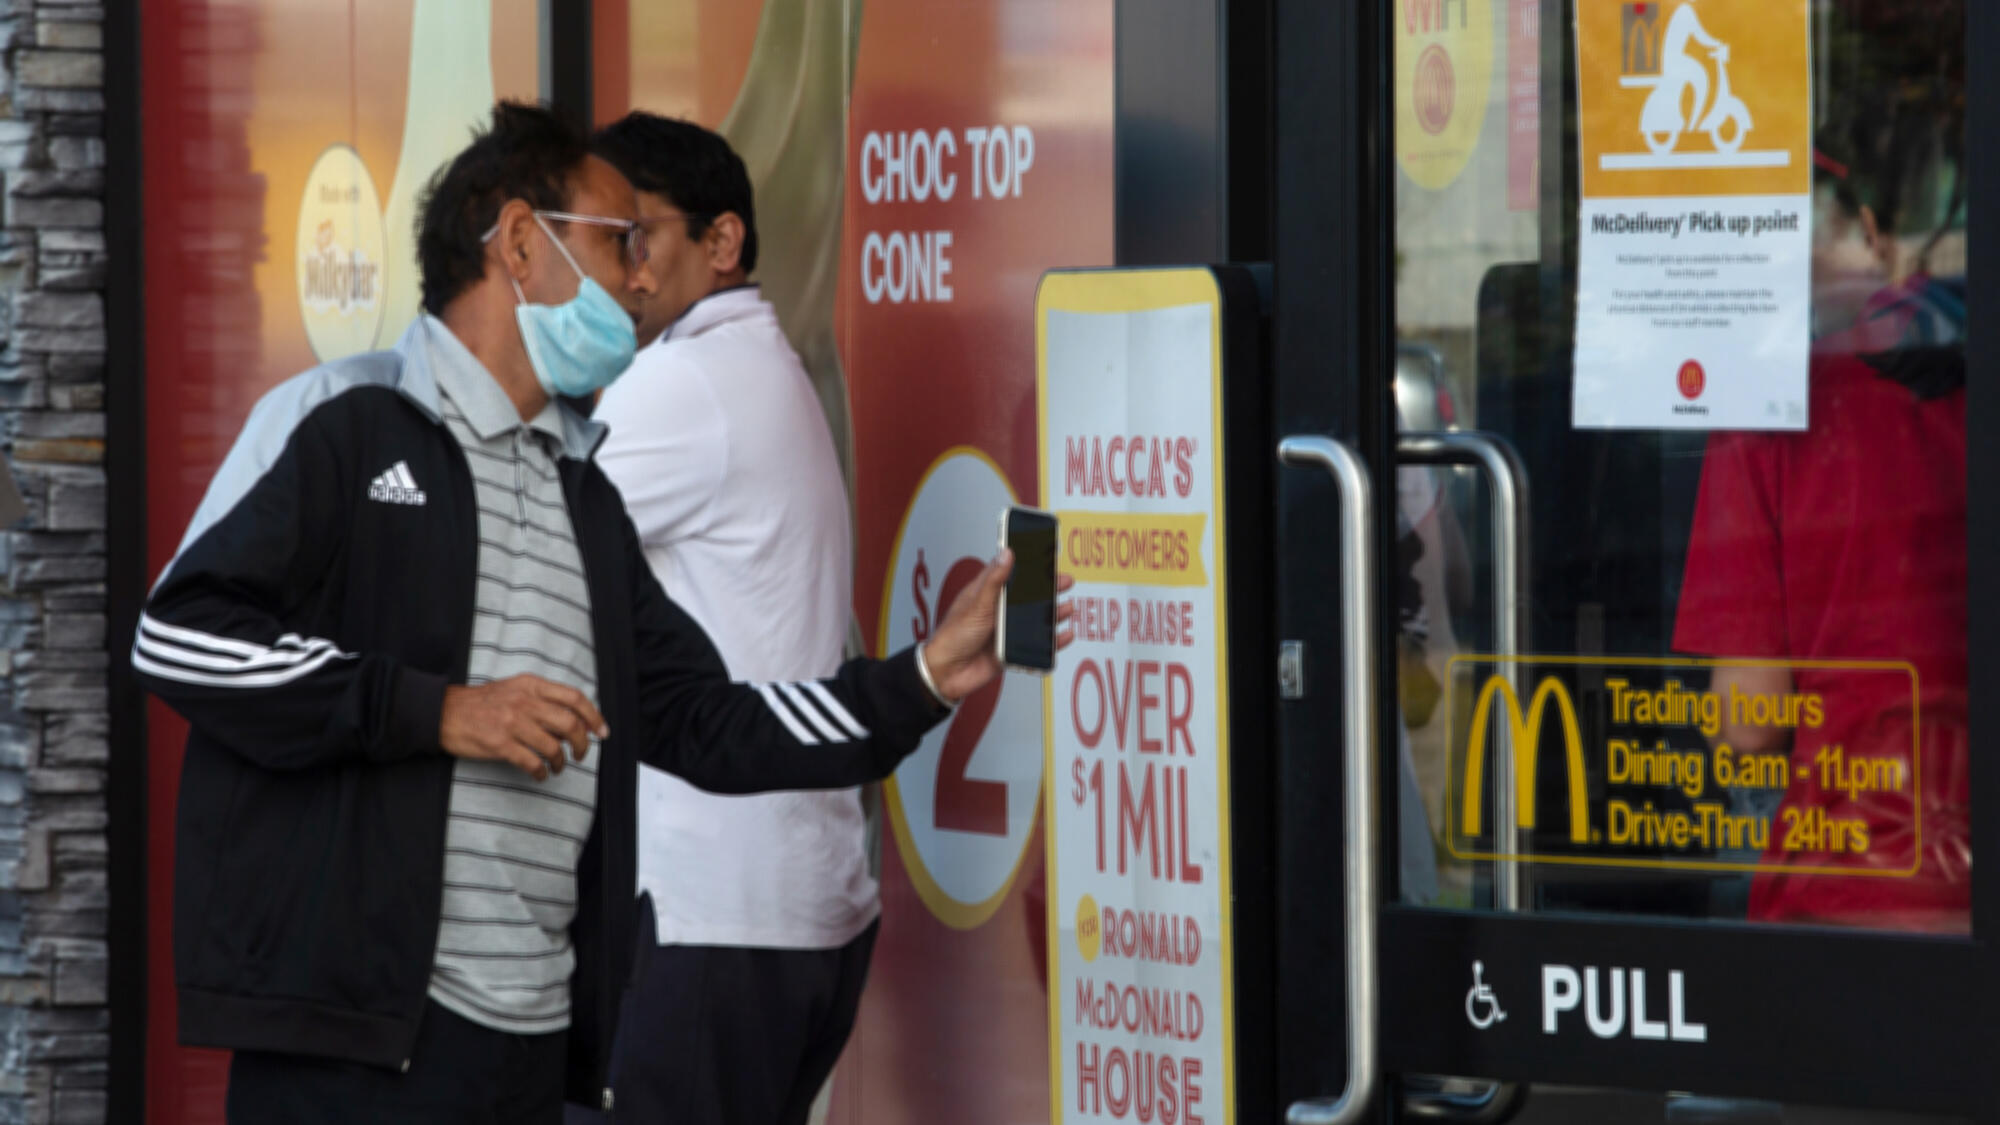 New Zealand's strict confinement rules and wide use of testing have been credited with curbing the spread of the coronavirus in the South Pacific nation.